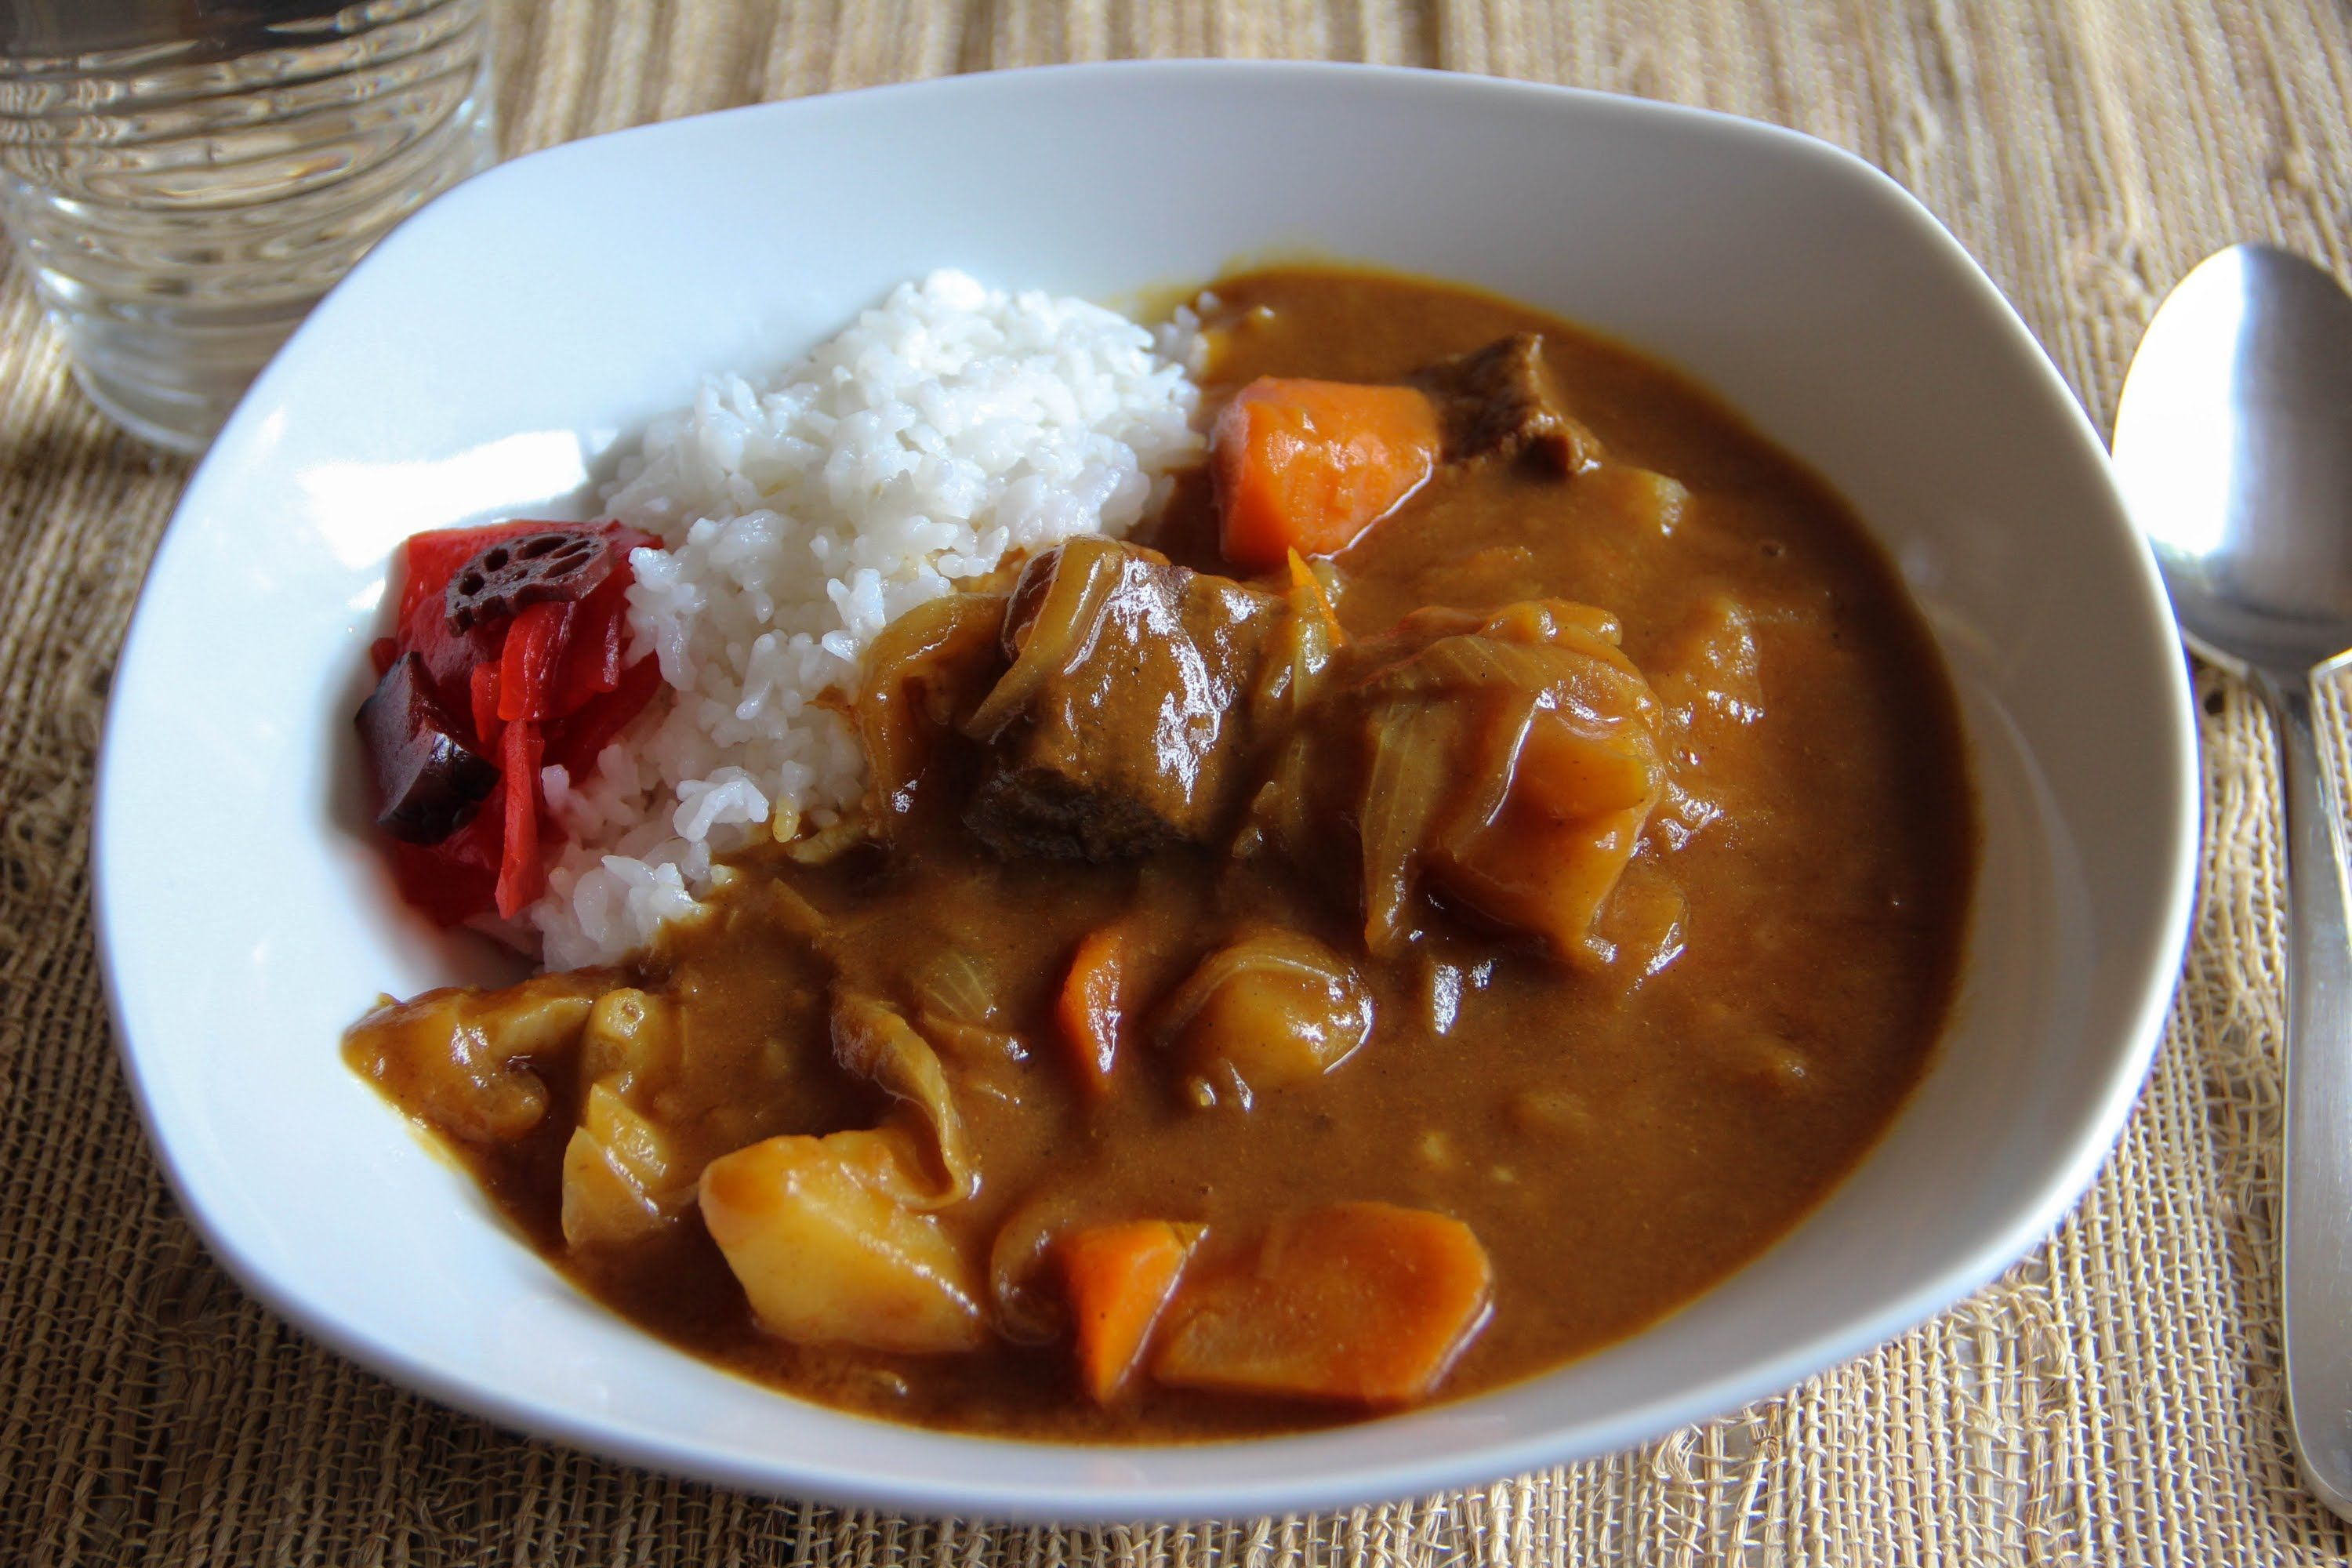 Curry And Rice Recipe Japanese Cooking 101 Japanese Cooking Food Curry Recipes